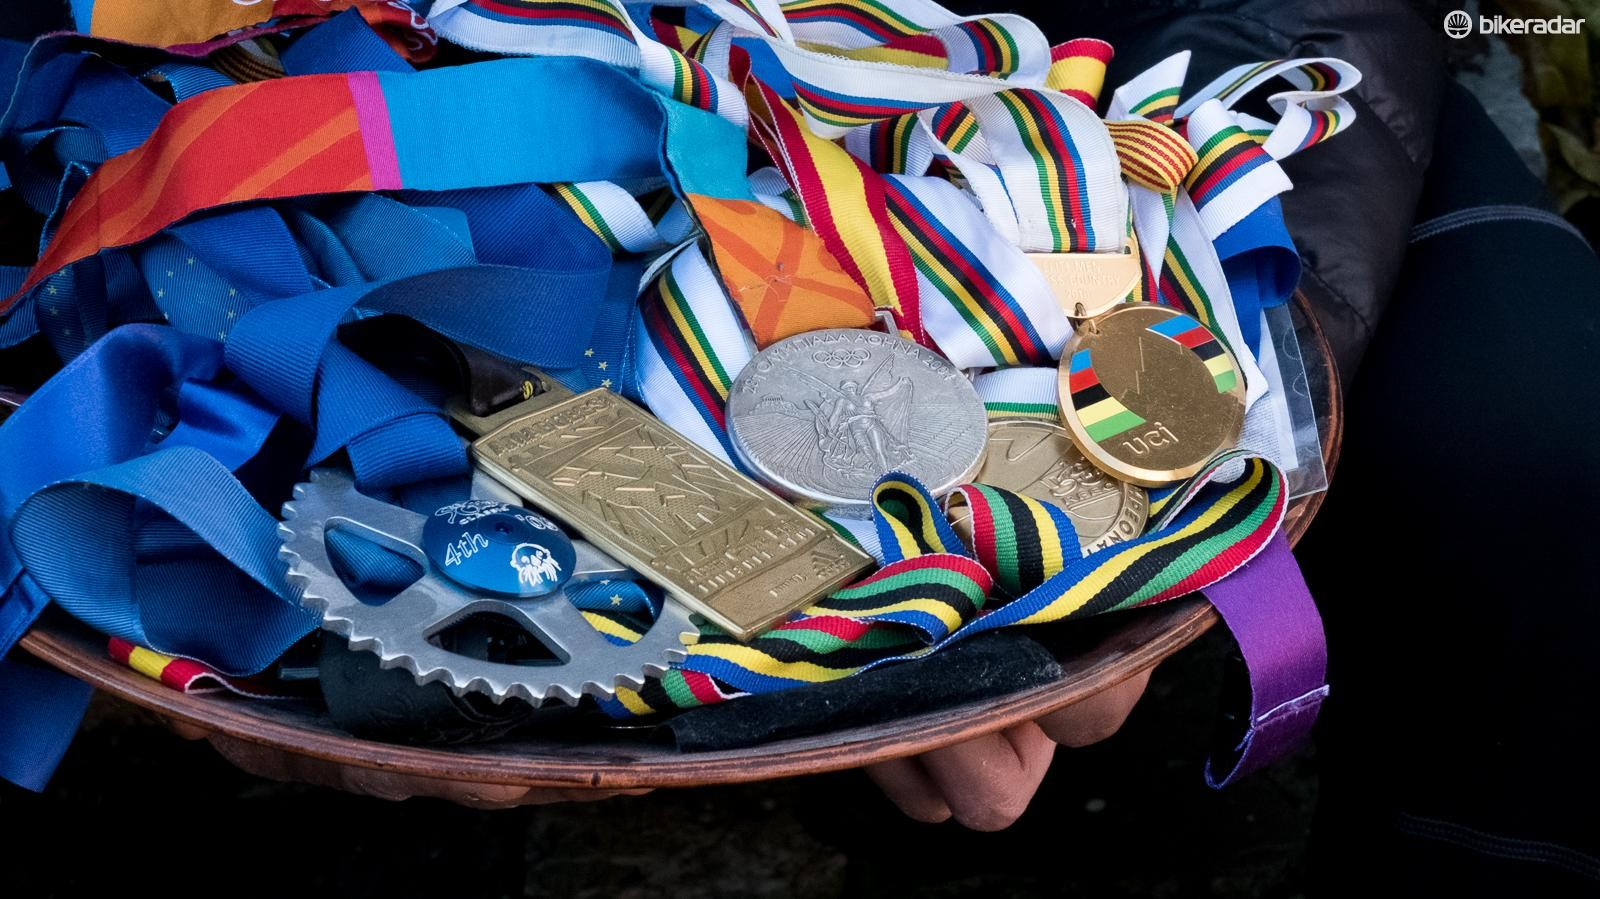 Yes, that is an Olympic silver medal